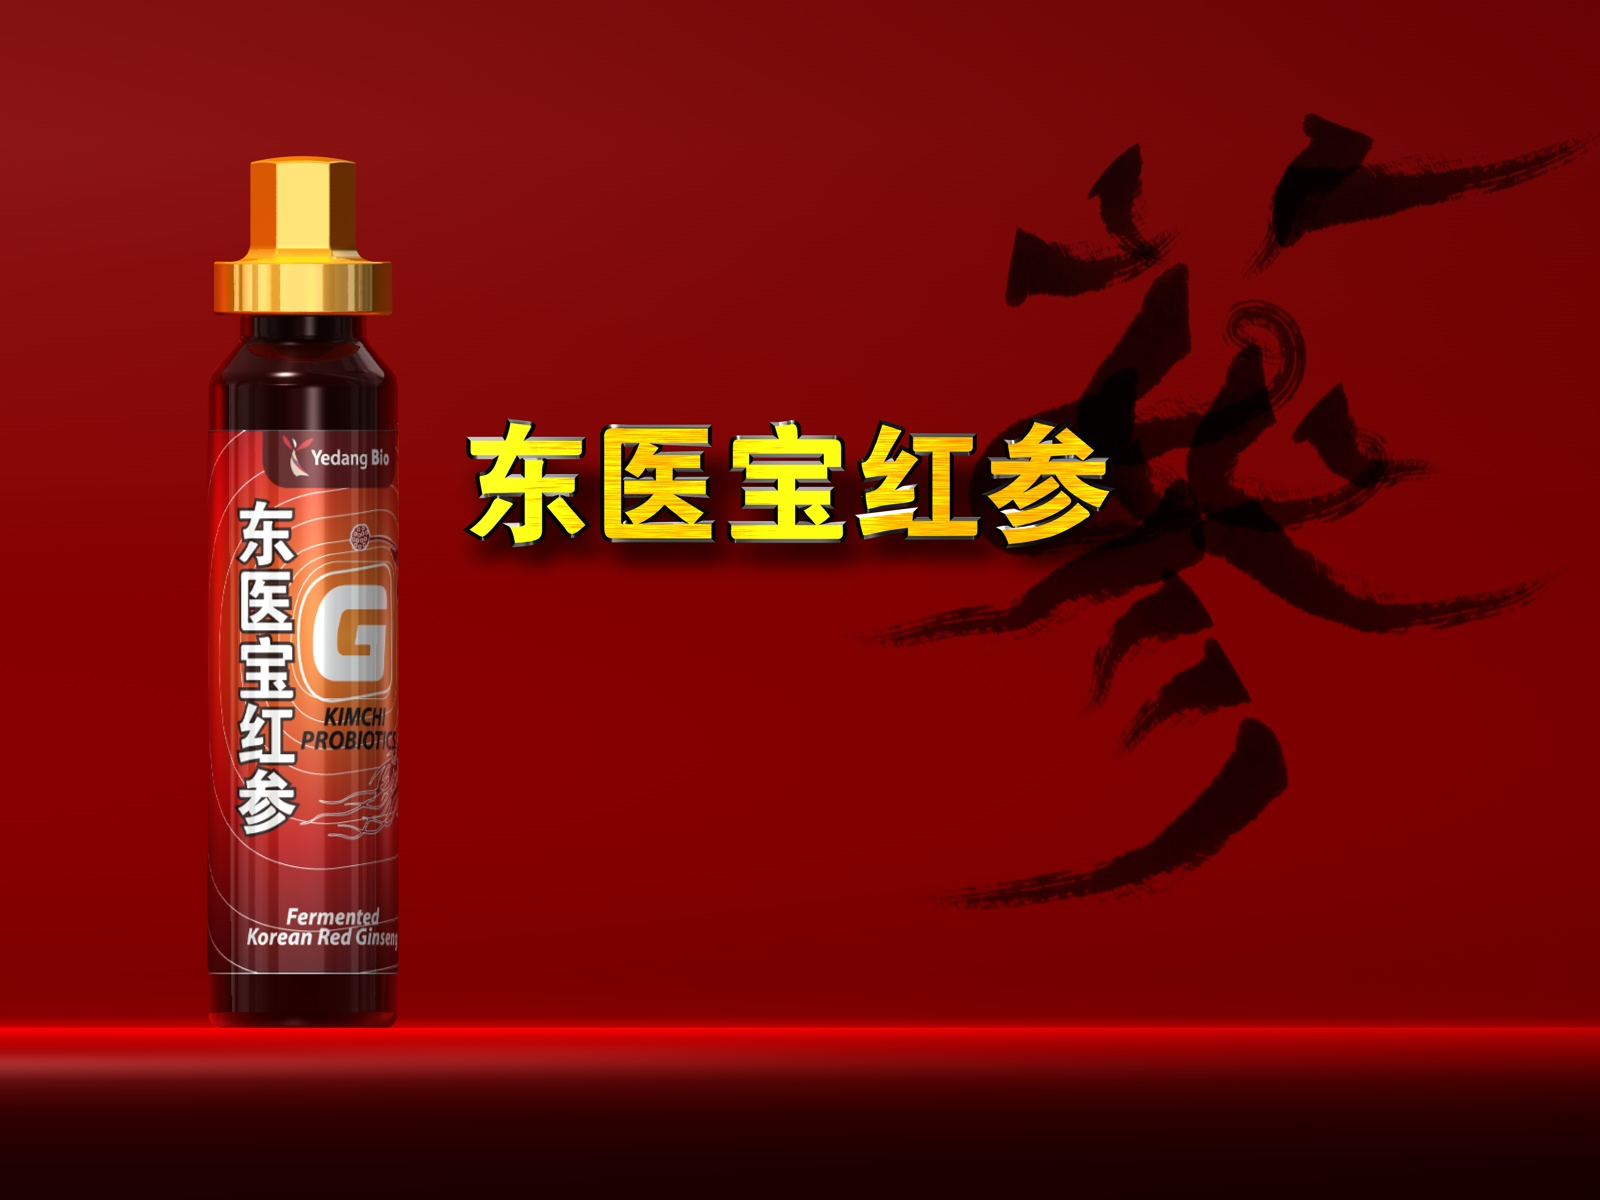 Fermented Korean Red Ginseng Drink